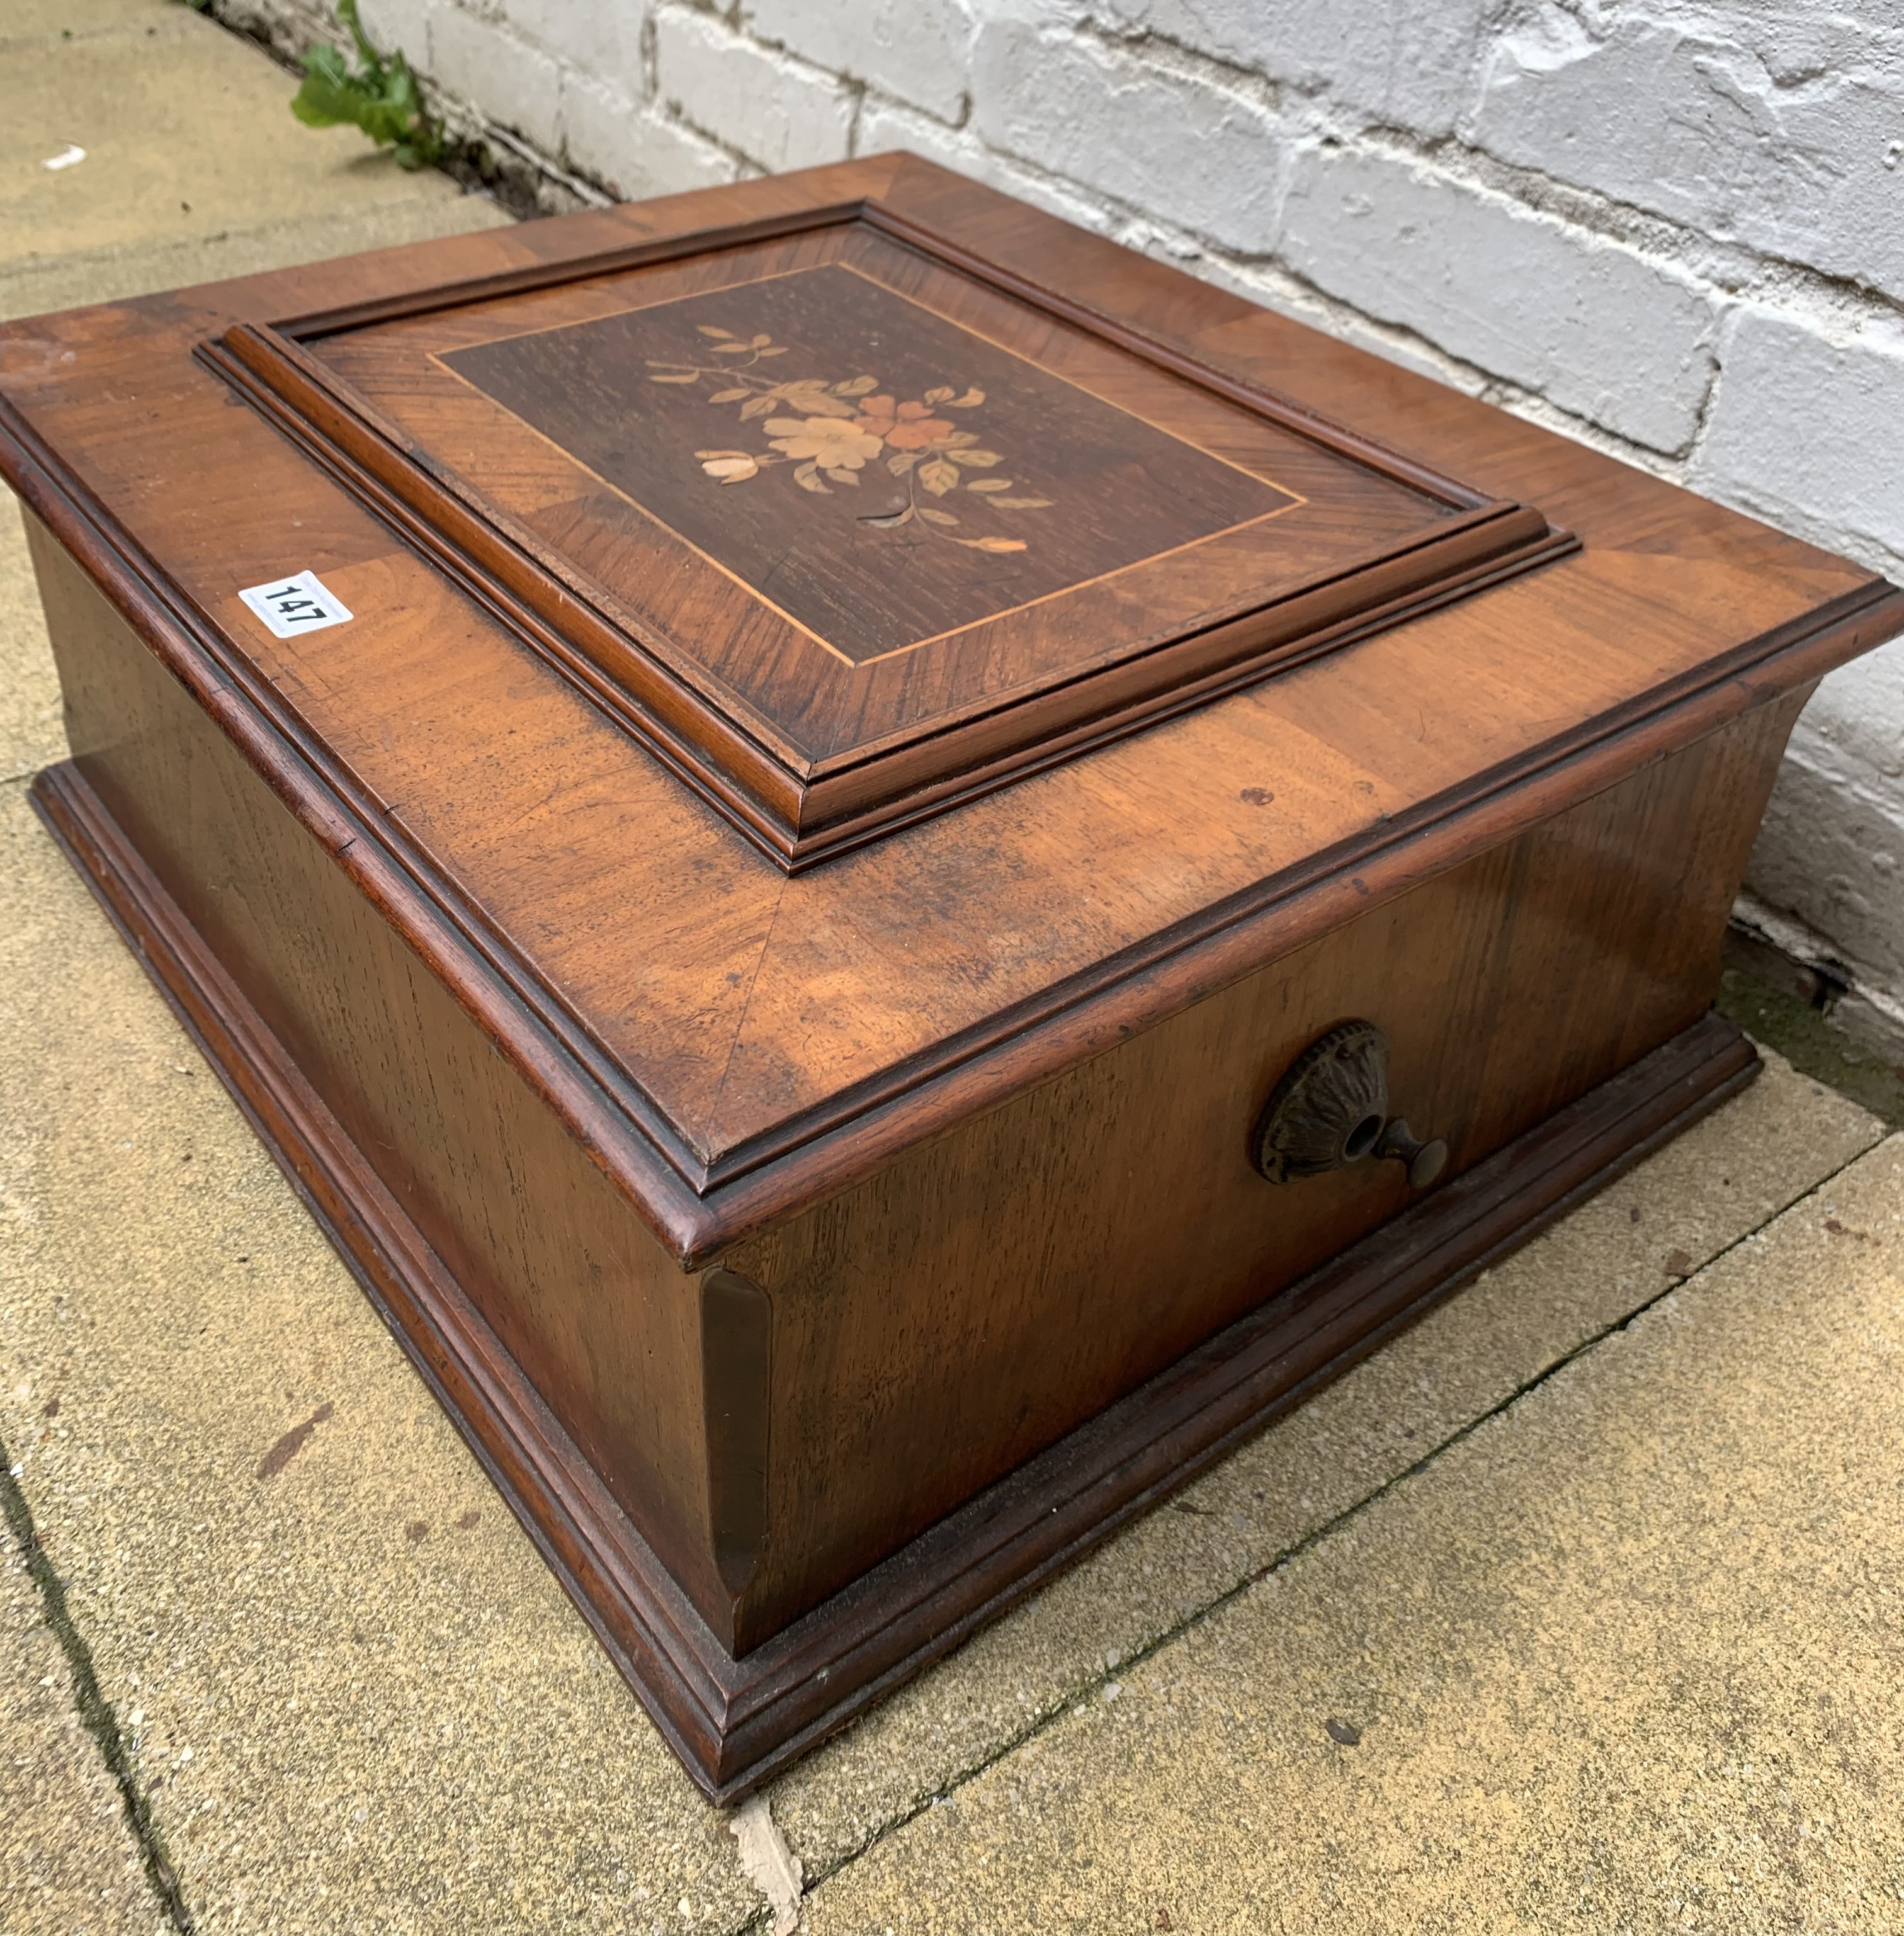 """Antique Polyphon music box in inlaid box, 21"""" long x 18"""" wide with 8 discs. Working - Image 7 of 15"""